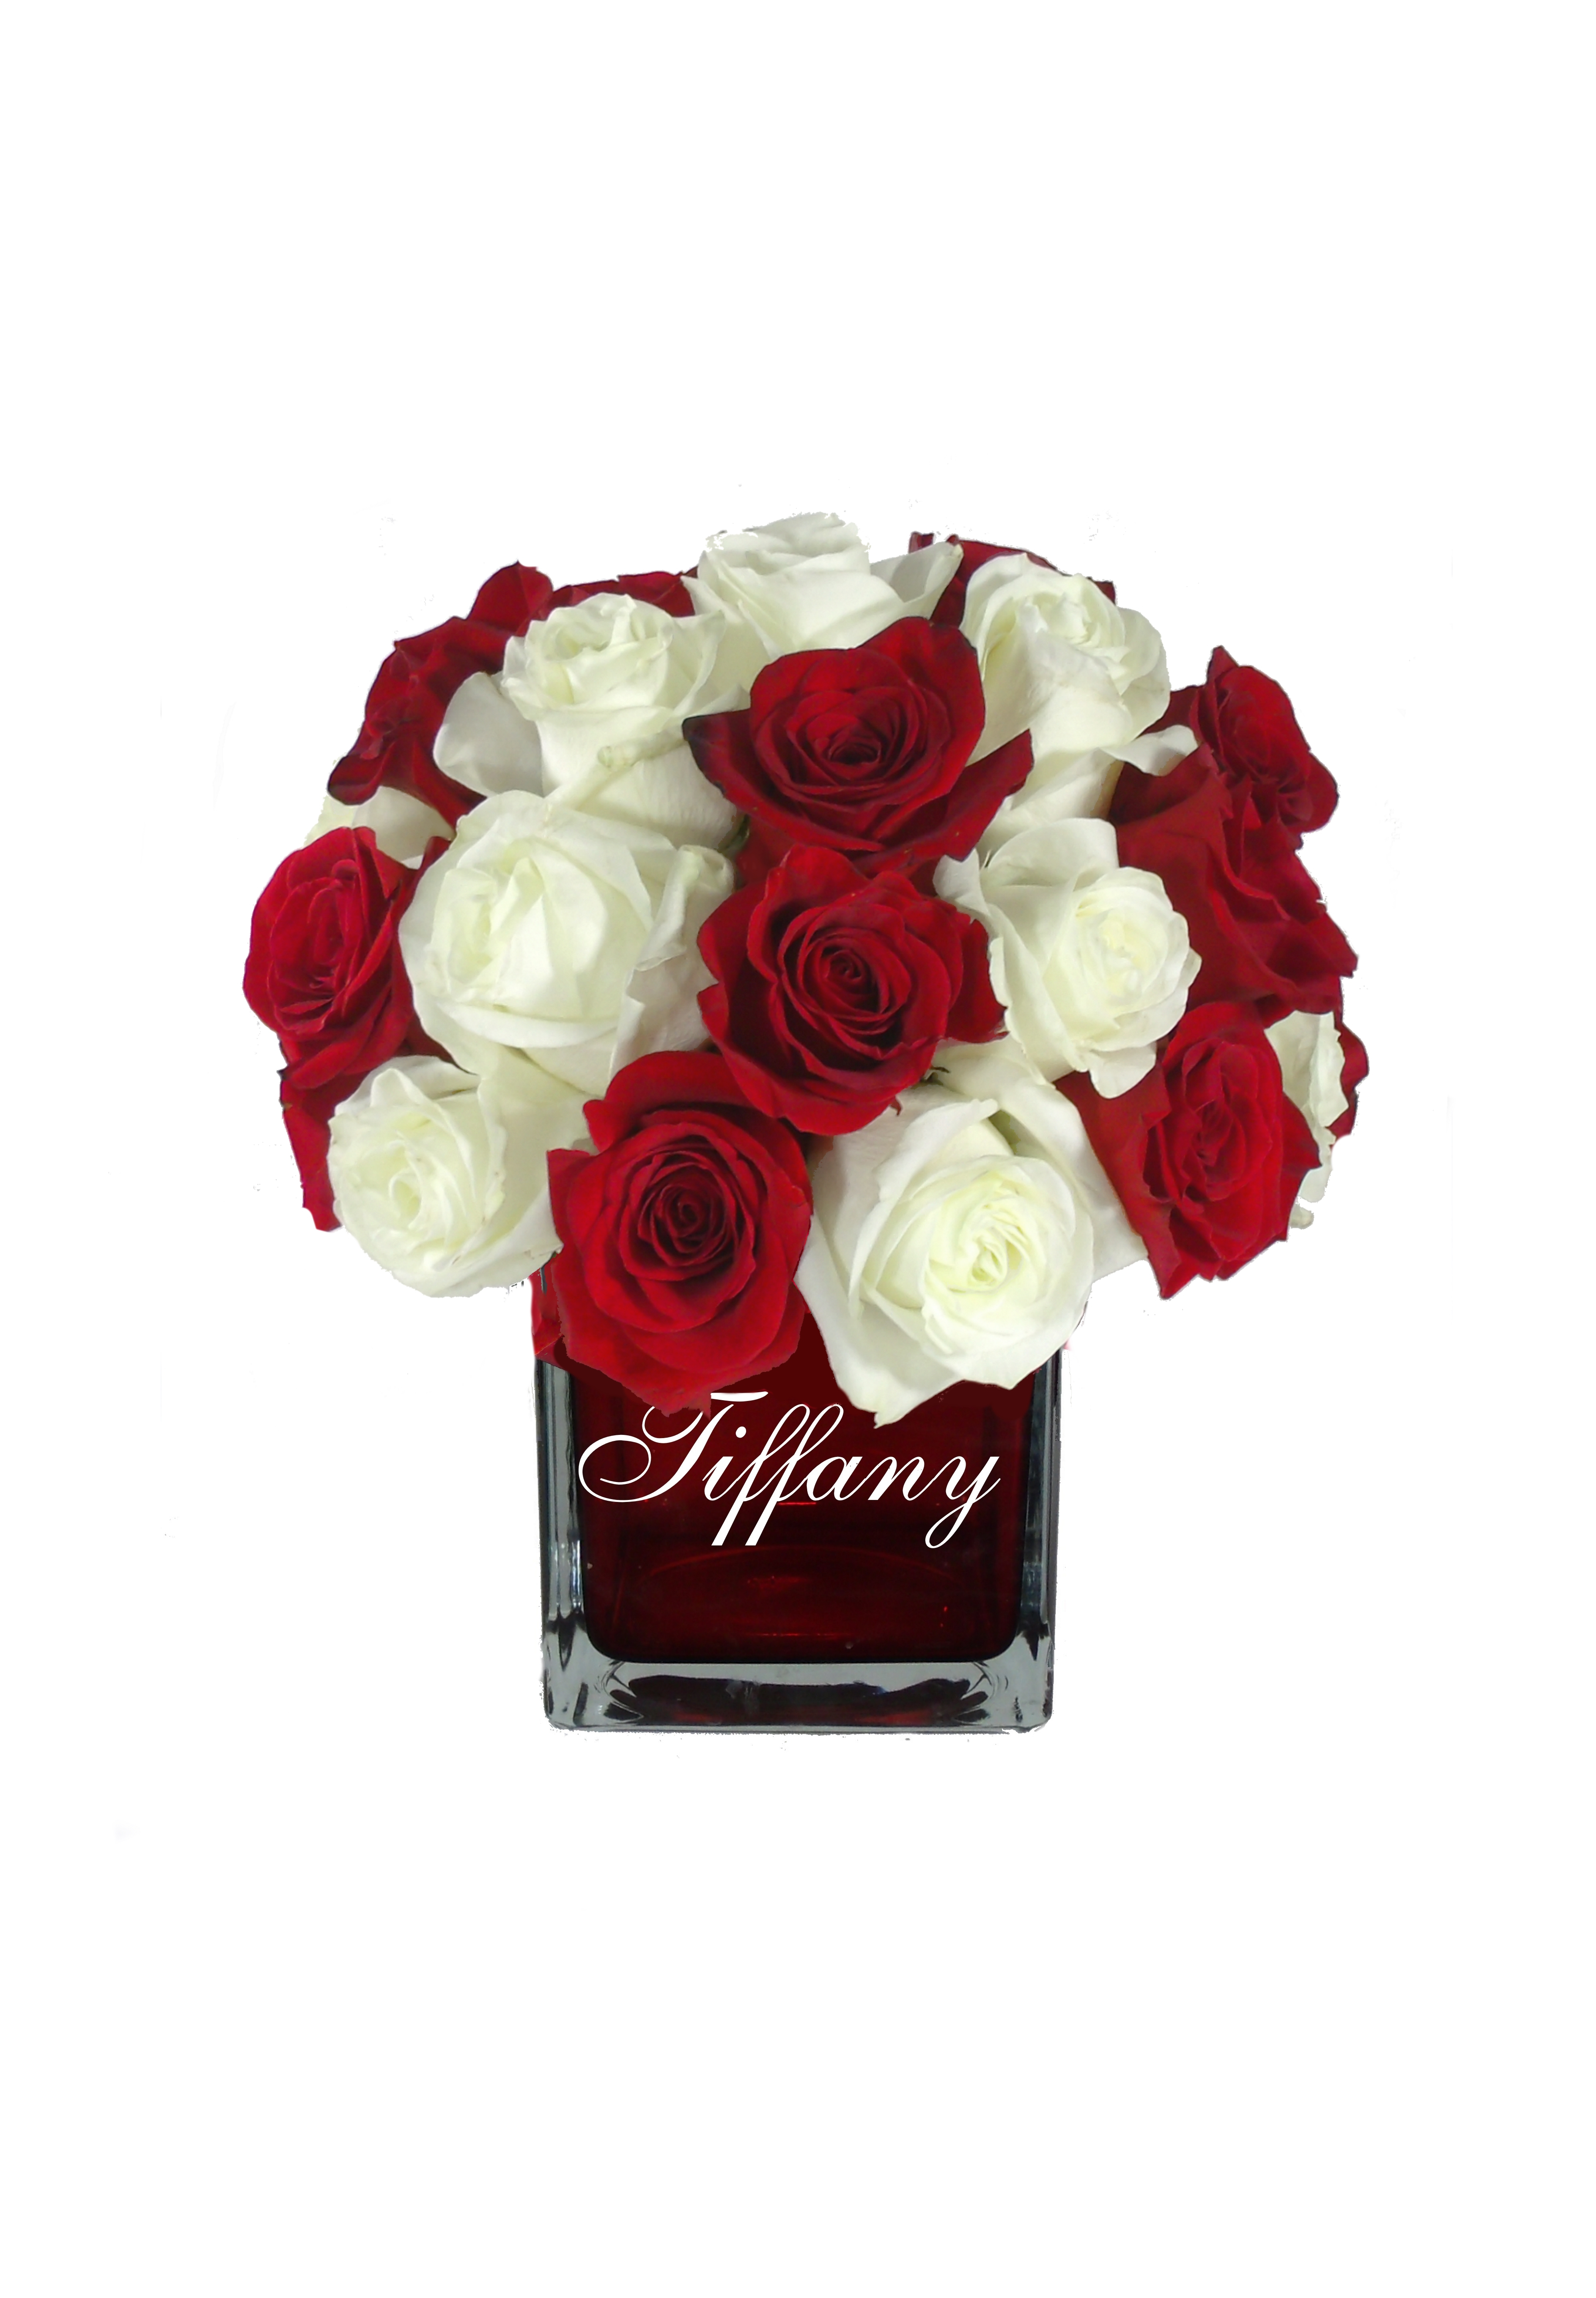 Monogrammed Personalized Vase With Red Roses Flower Arrangement